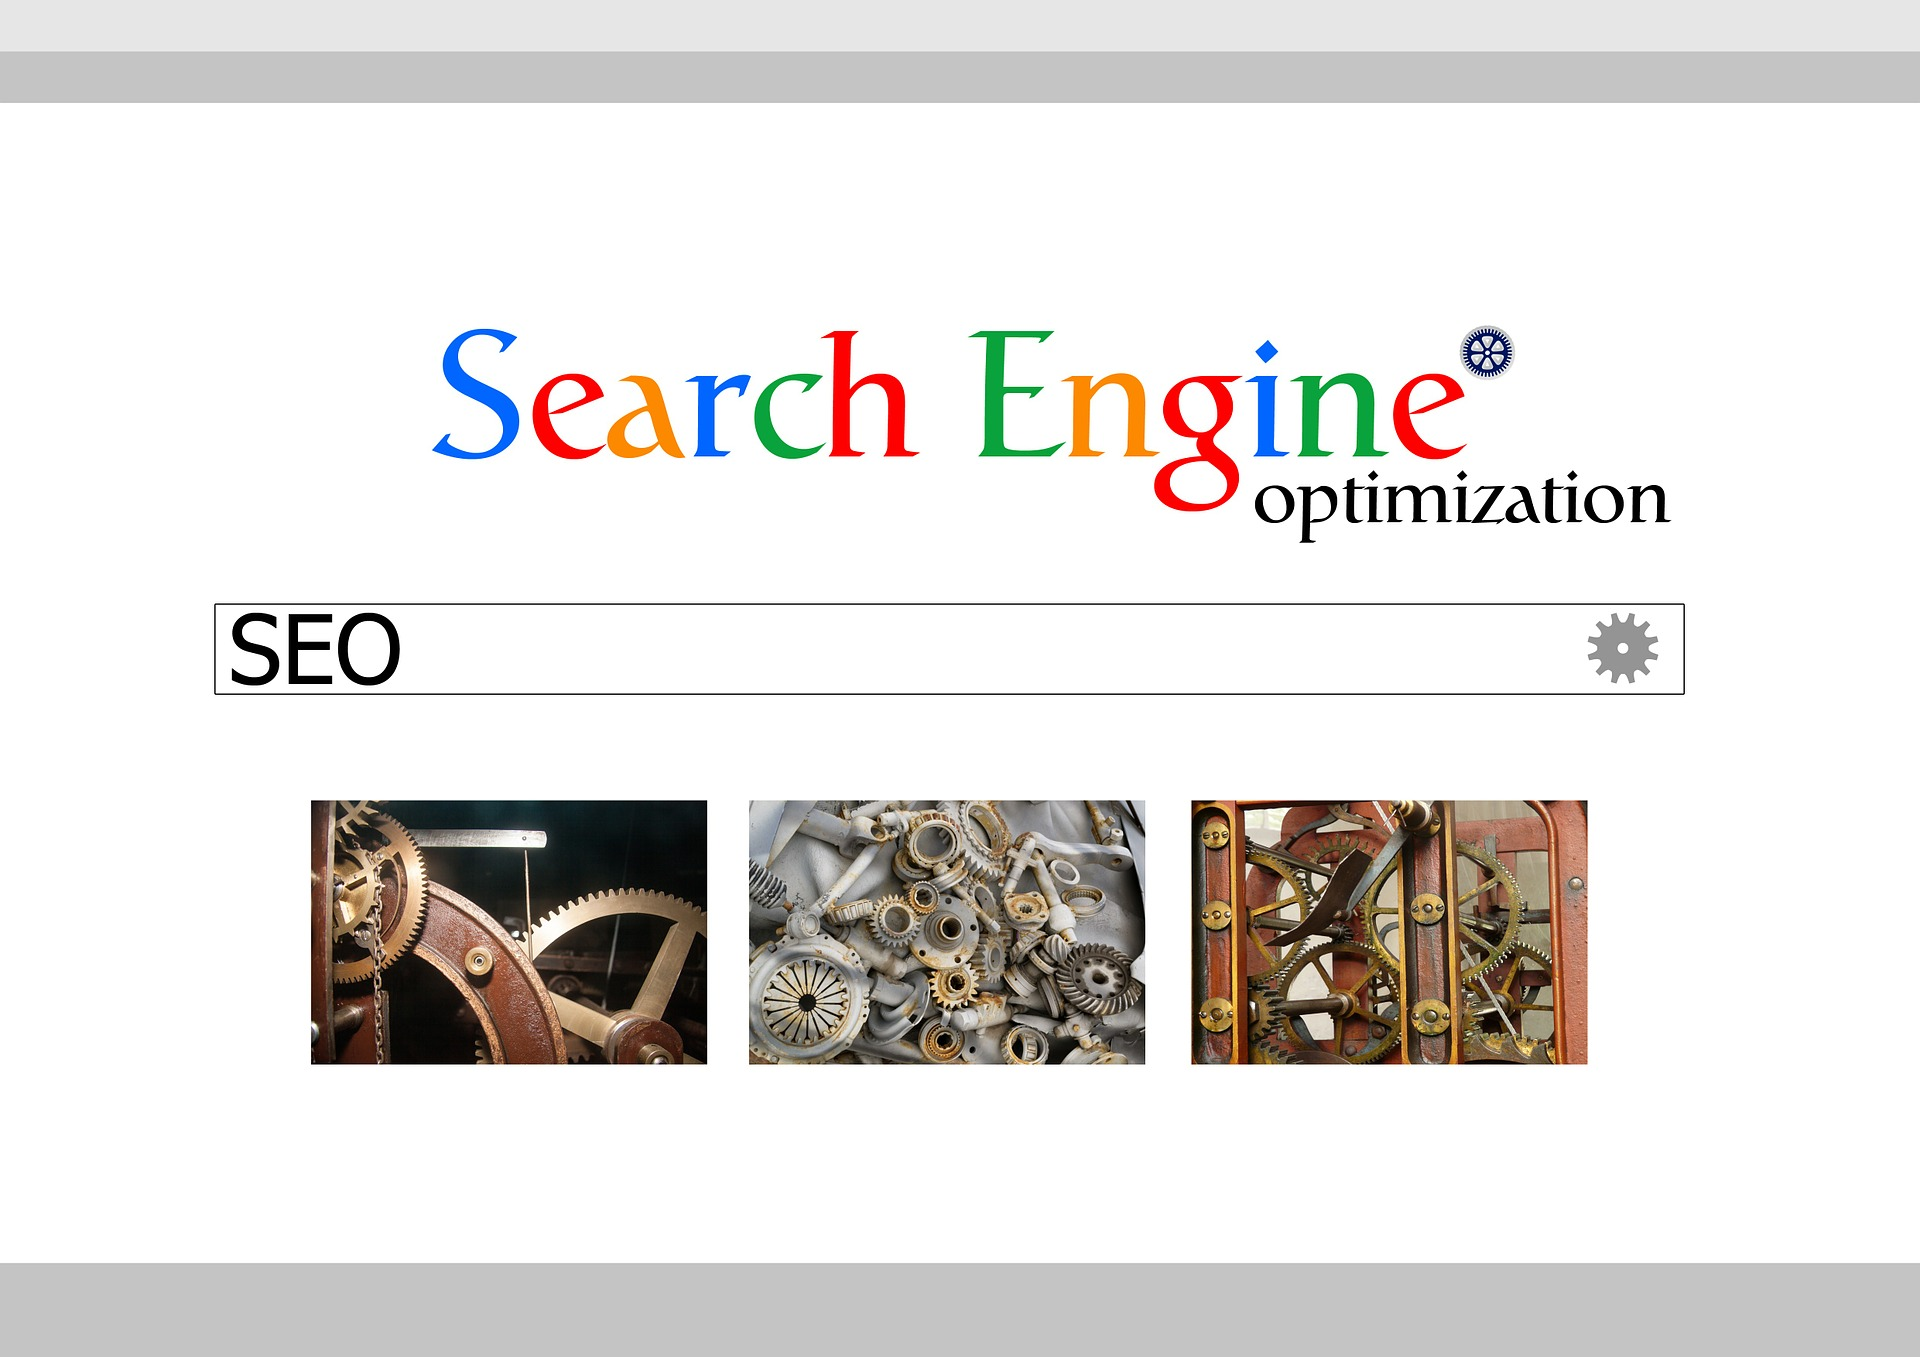 ojasweb-search-engine-optimization-441398_1920